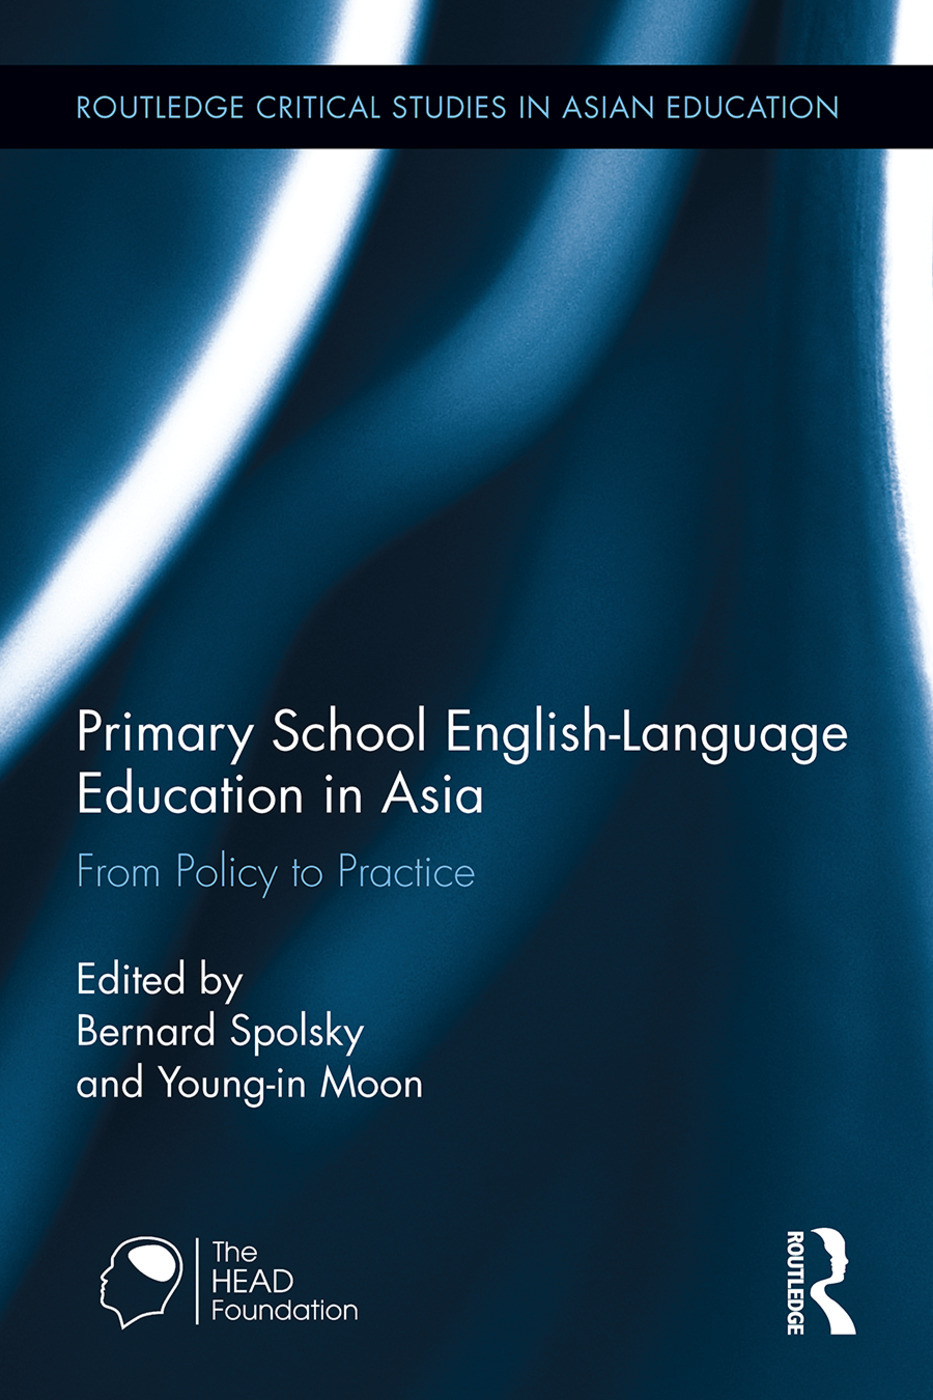 Routledge_Primary School English-Language Education in Asia